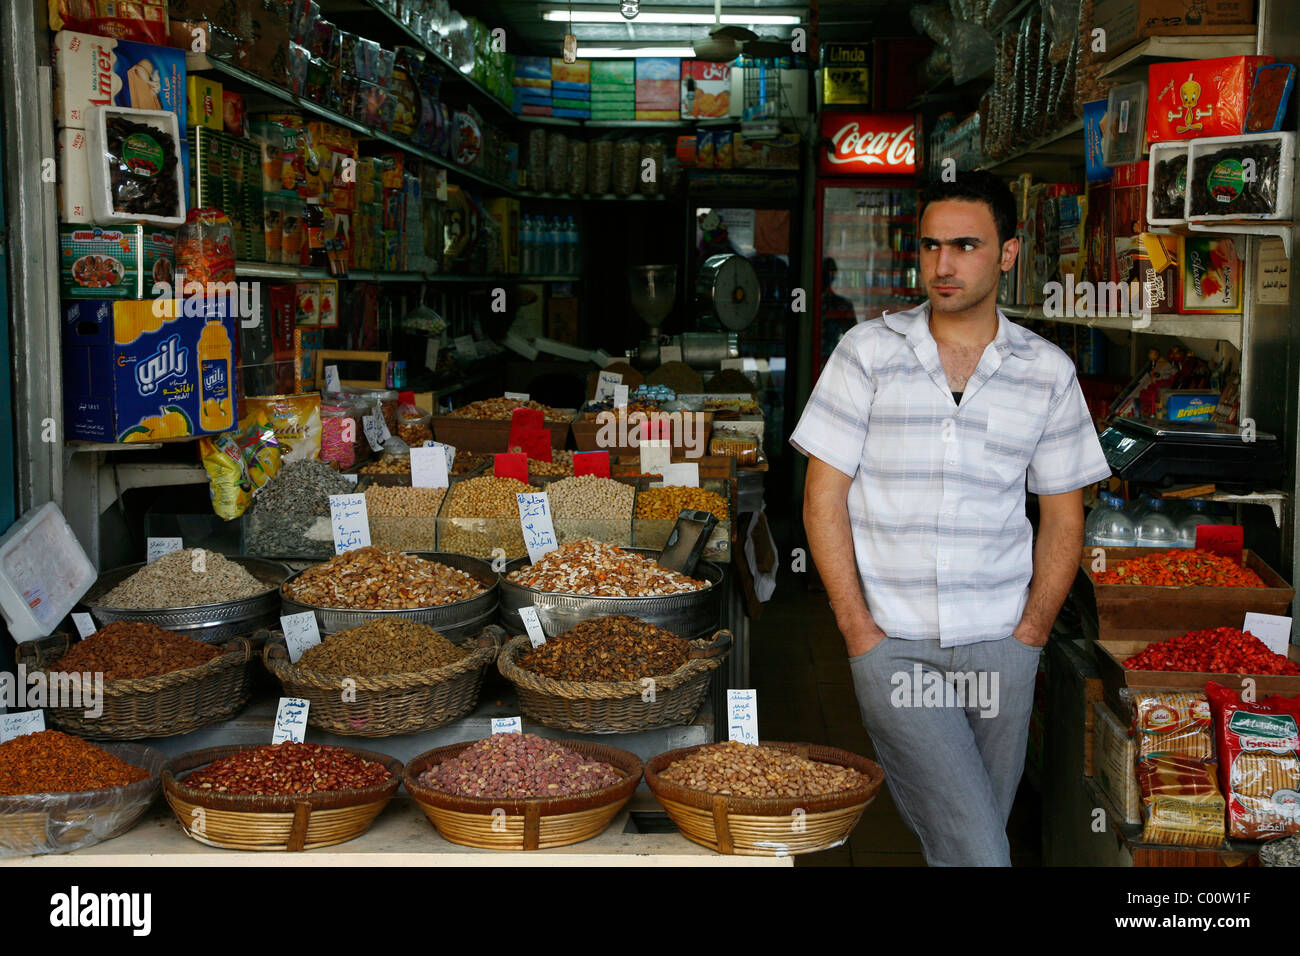 Nut shop and grocery shop in downtown Amman, Jordan. - Stock Image